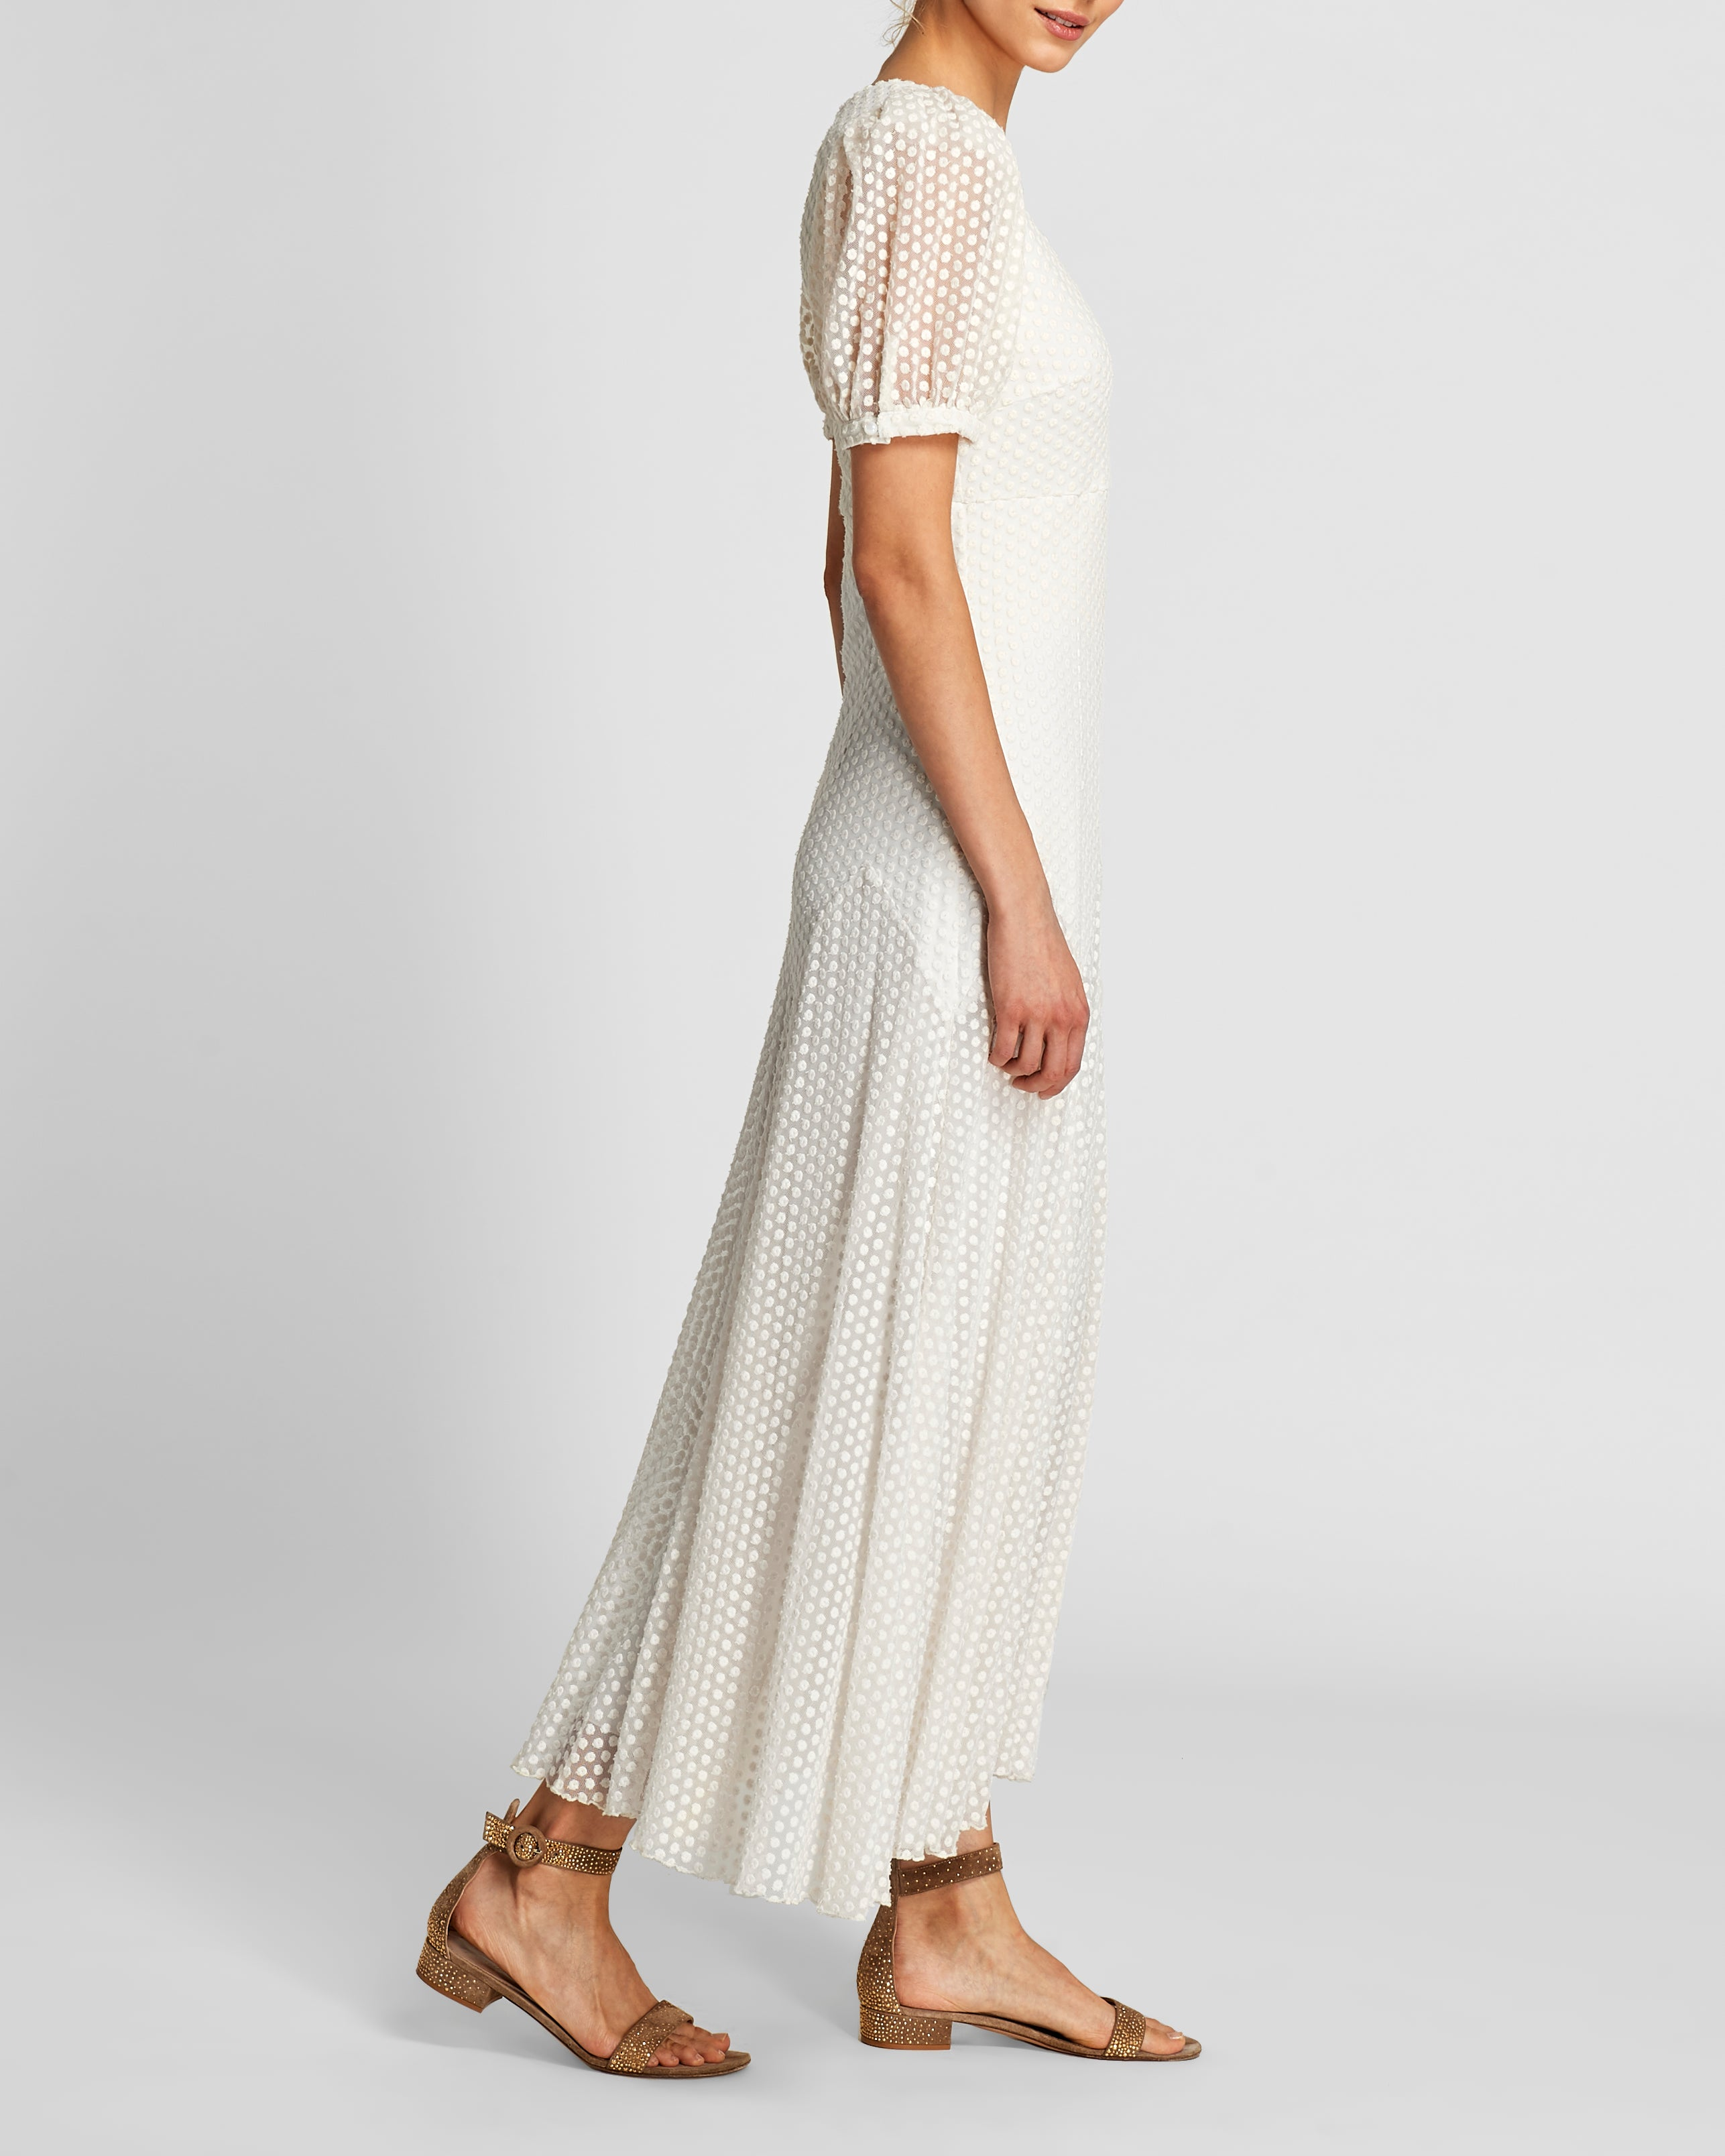 The Daisy Dress | Ivory